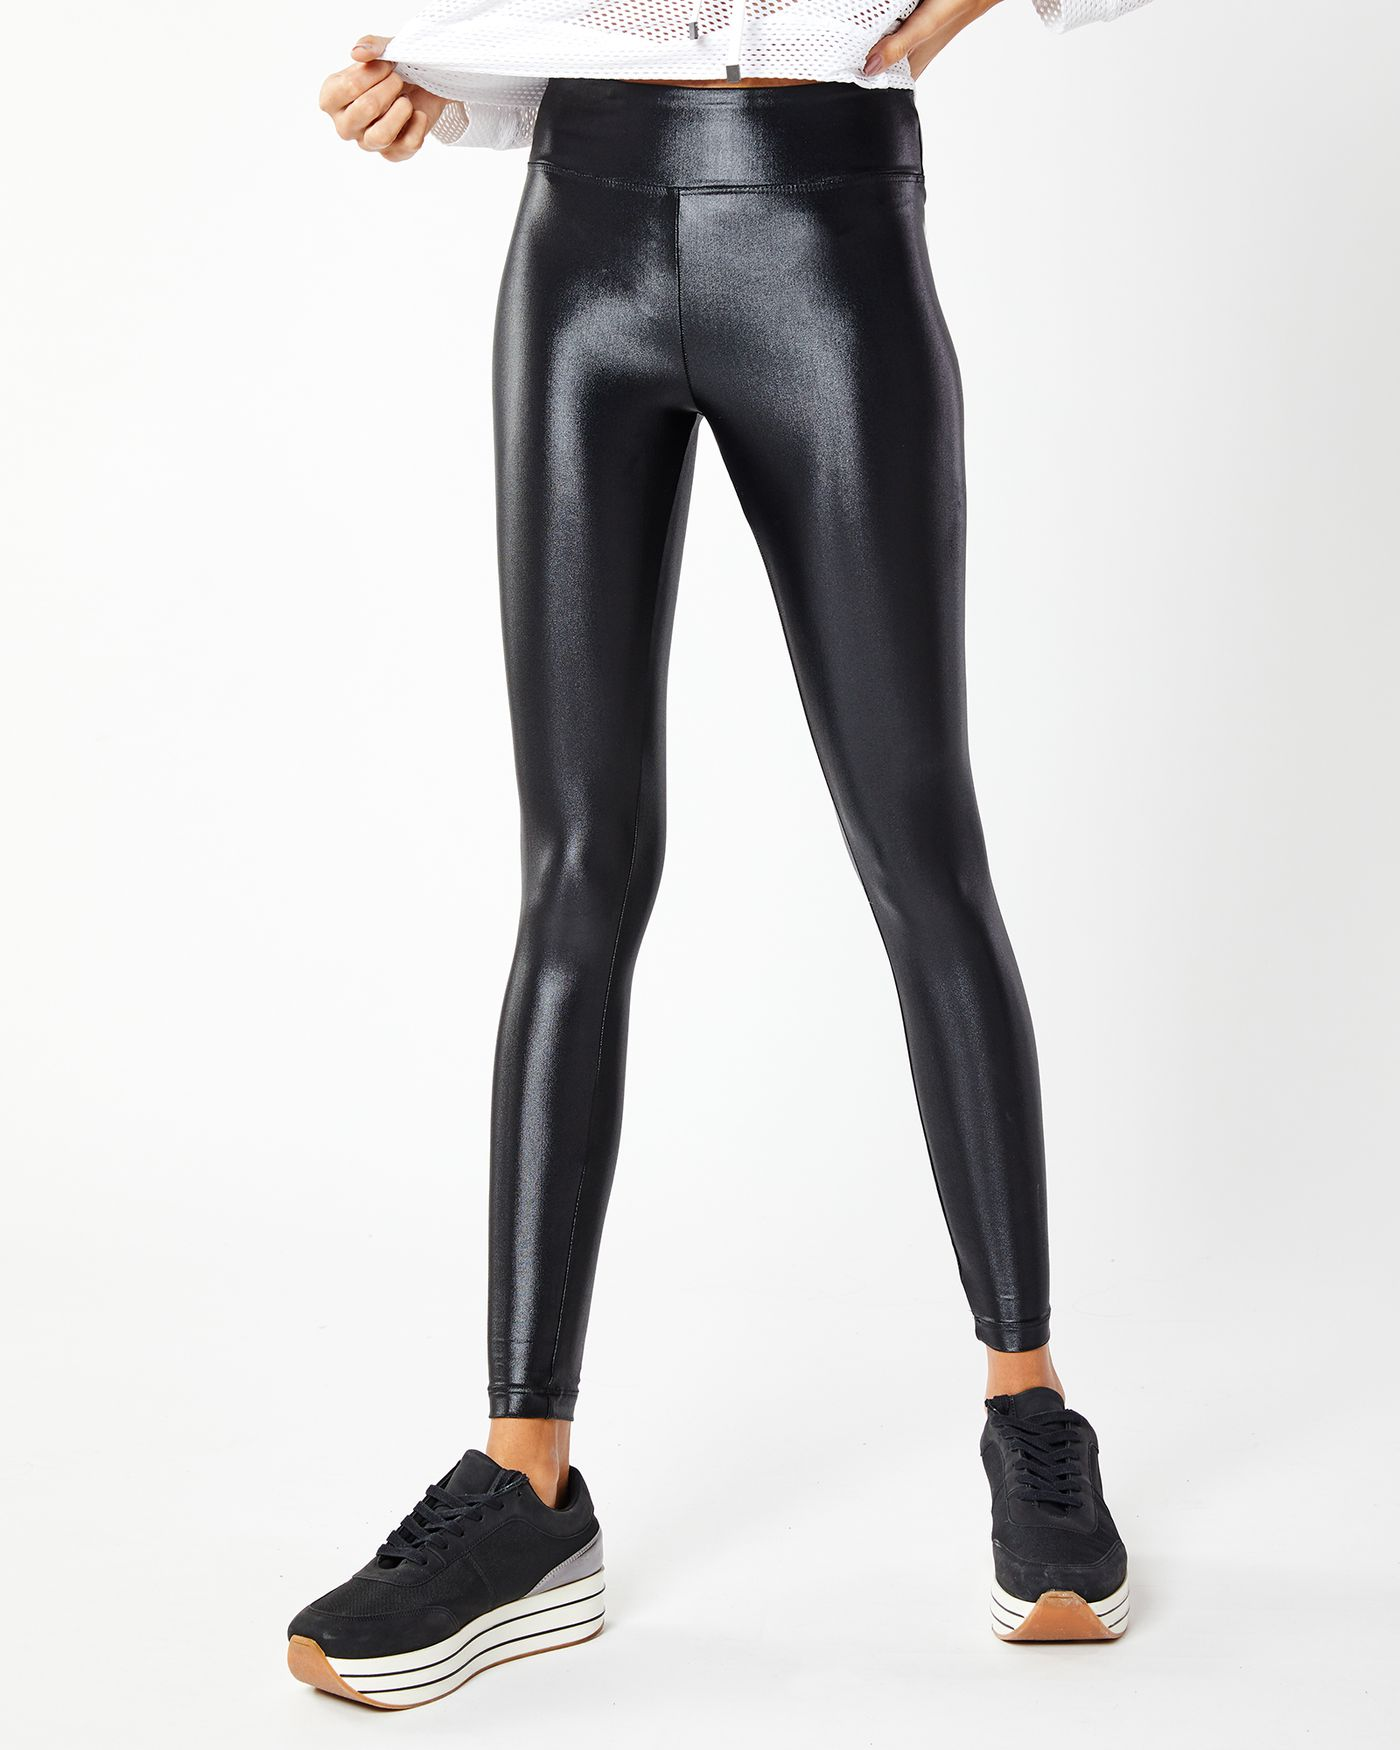 78de4c38671ee Lustrous High-Rise yoga pant in liquid faux leather by Koral are available  on the